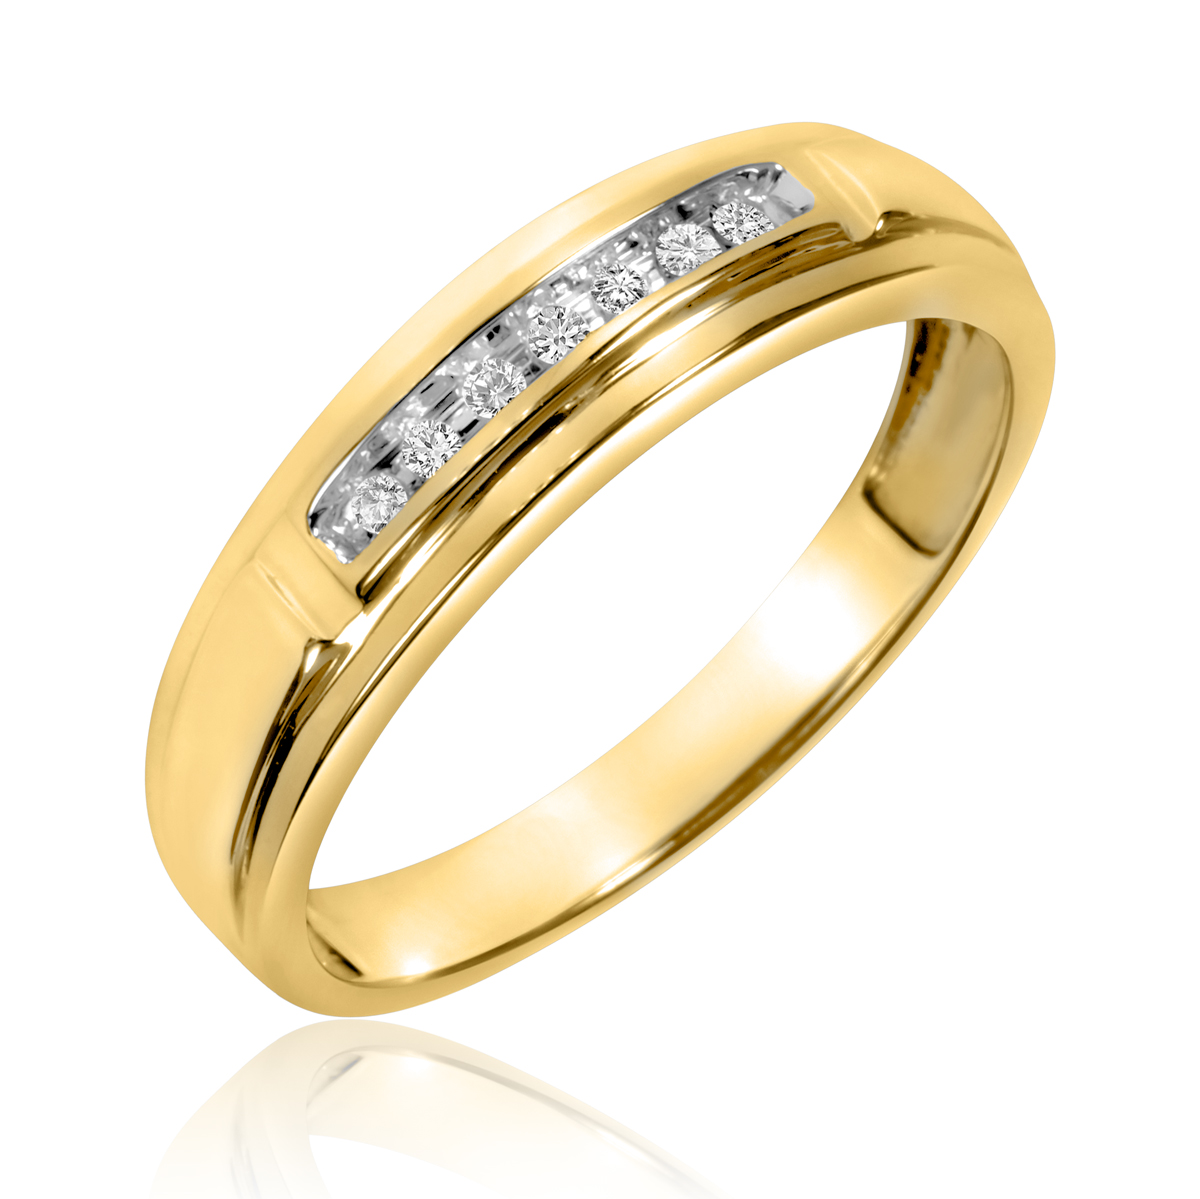 1/15 Carat T.W. Round Cut Diamond Men's Wedding Band 10K Yellow Gold- Size 8